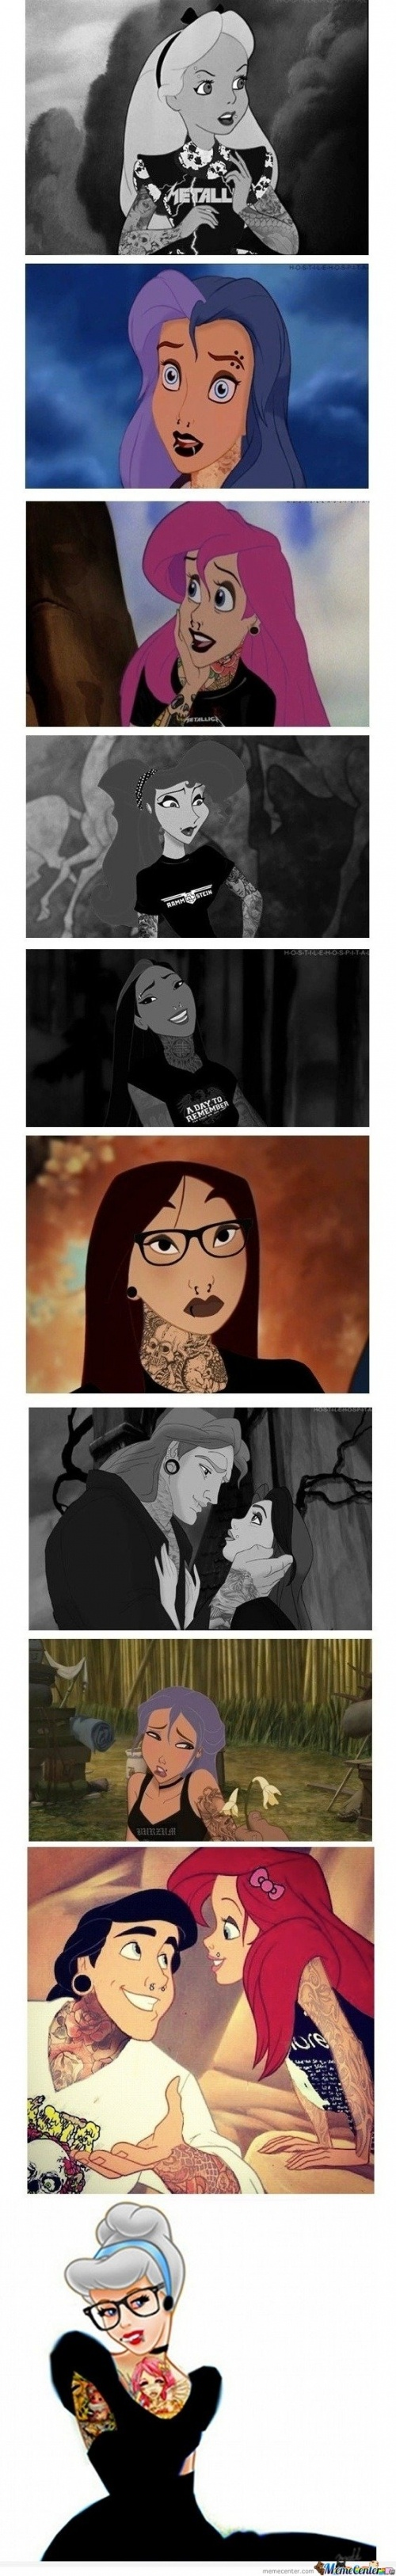 Disney Punk Rock Princesses ... ariel, belle, and pocahontas are my faves :D